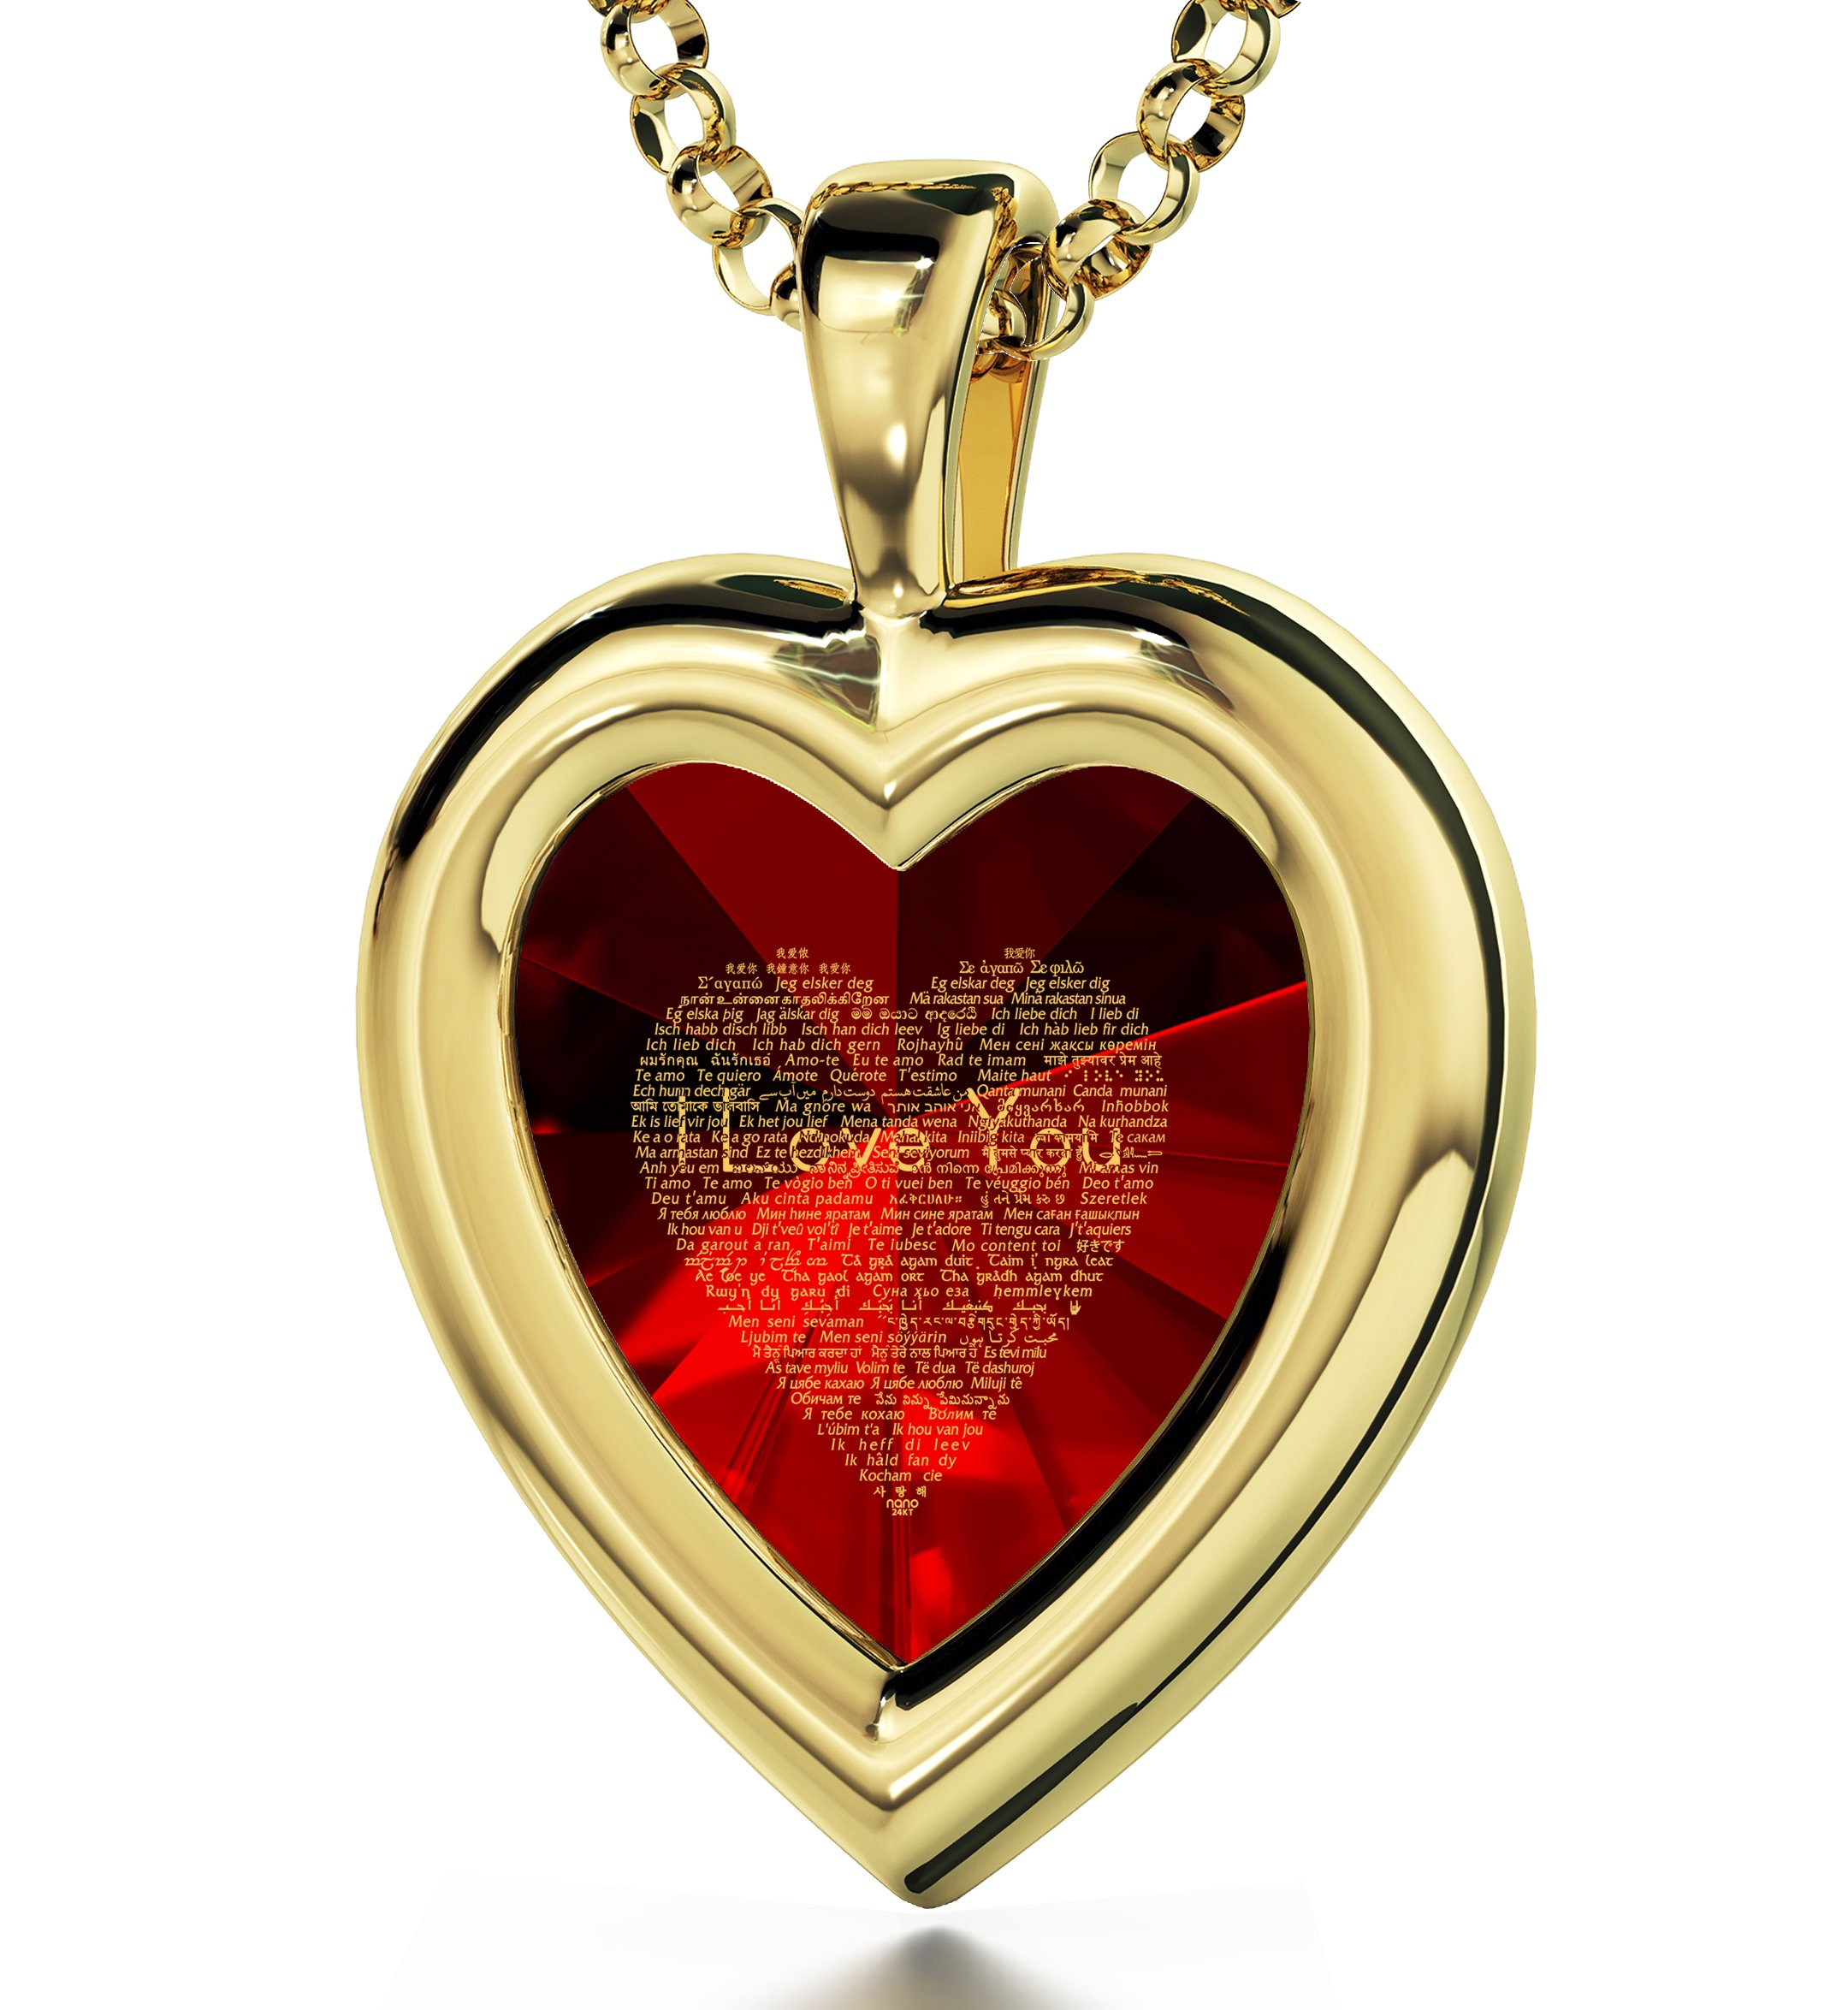 Yellow Gold Plated Heart Pendant I Love You Necklace 120 Languages 24k Inscribed Red Cubic Zirconia, 18''